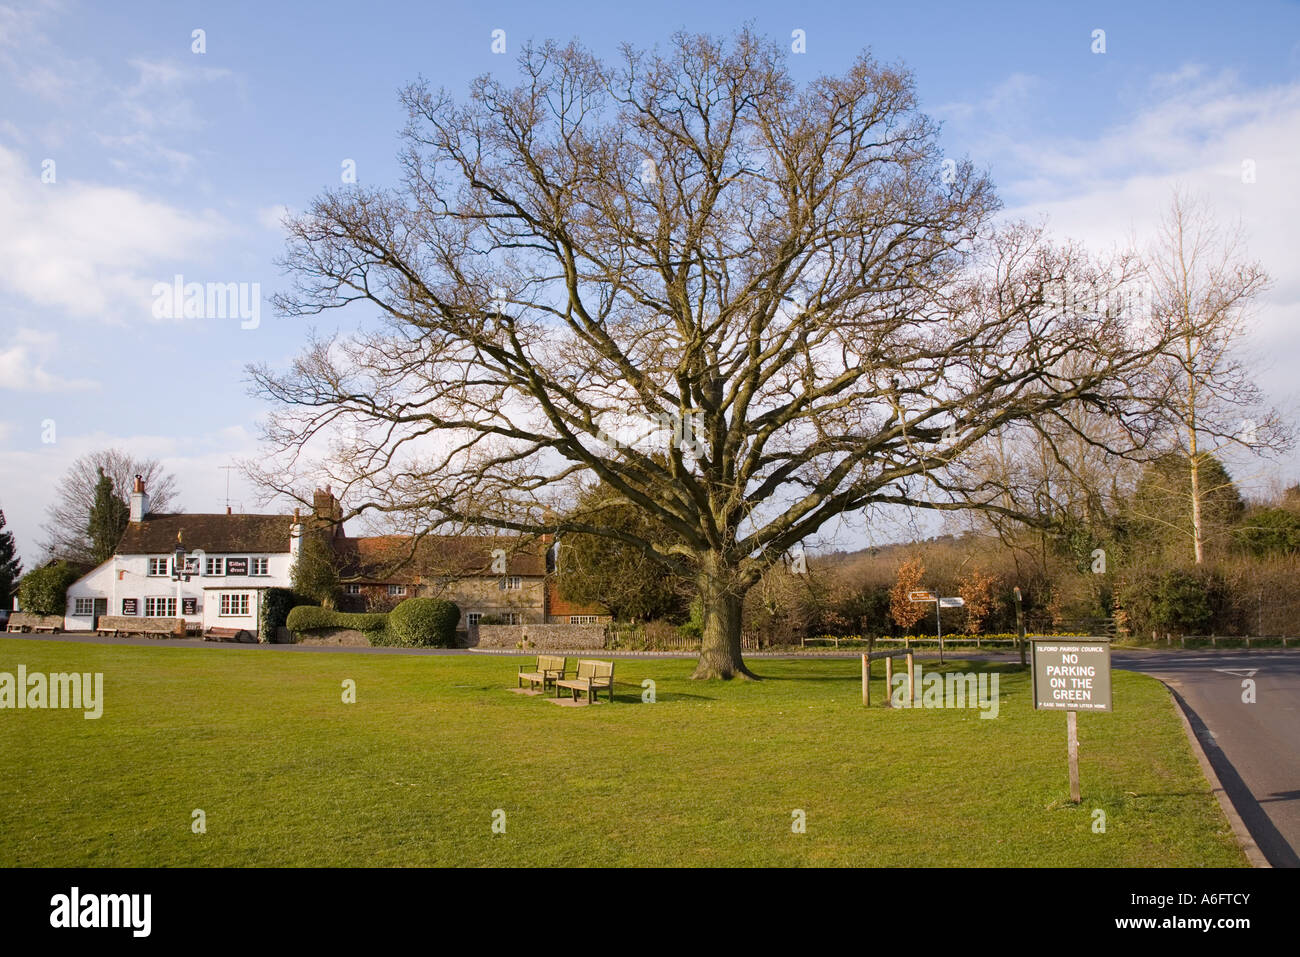 Picturesque village green with pub and oak tree Tilford Surrey England UK - Stock Image